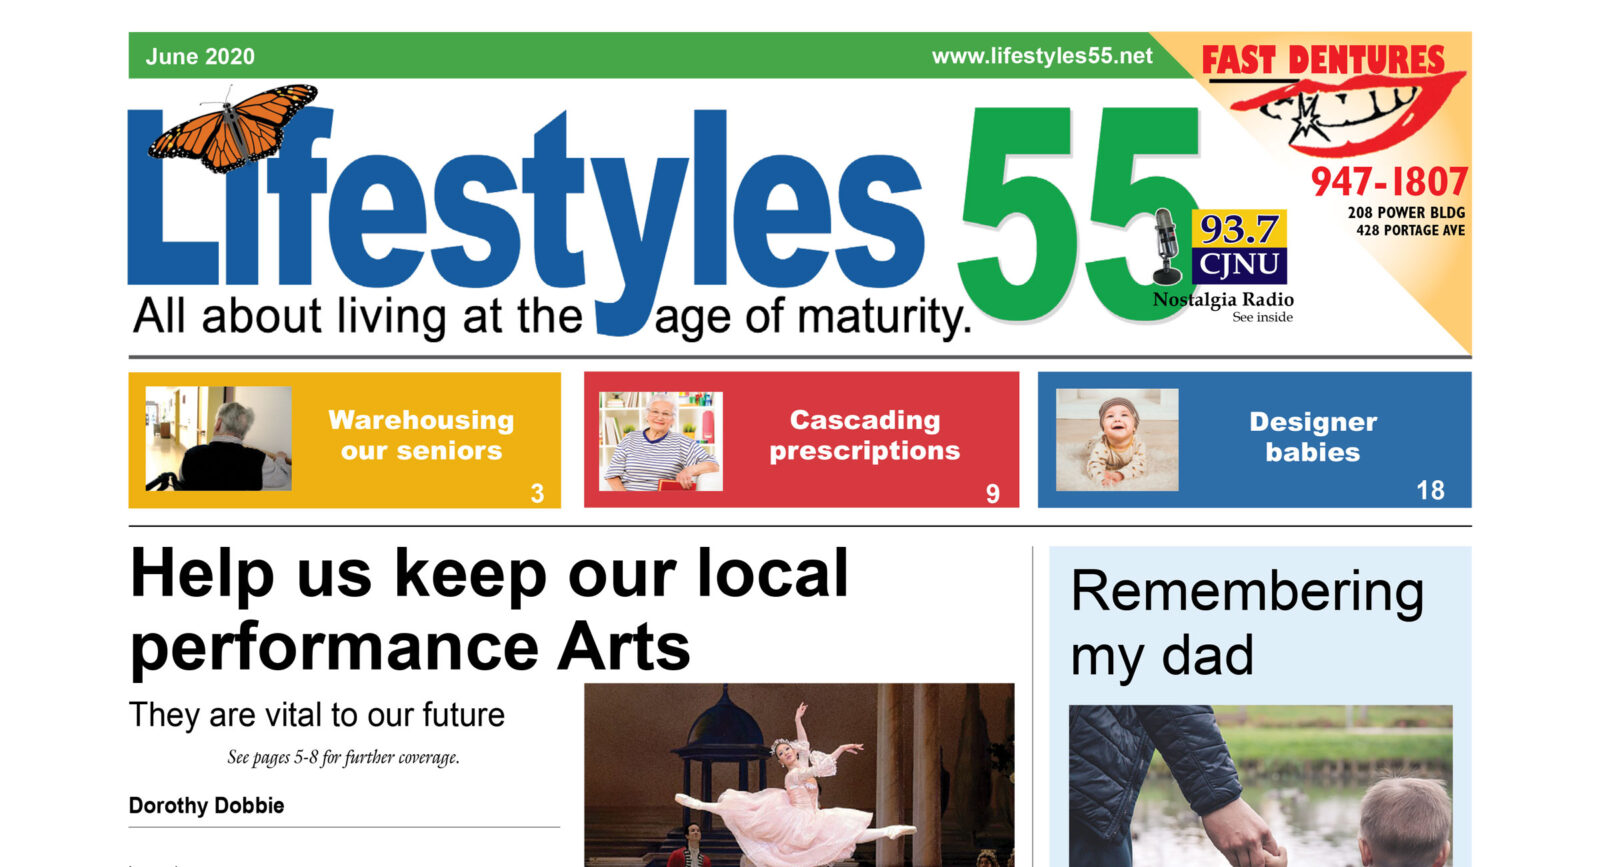 Lifestyles 55 June 2020 issue